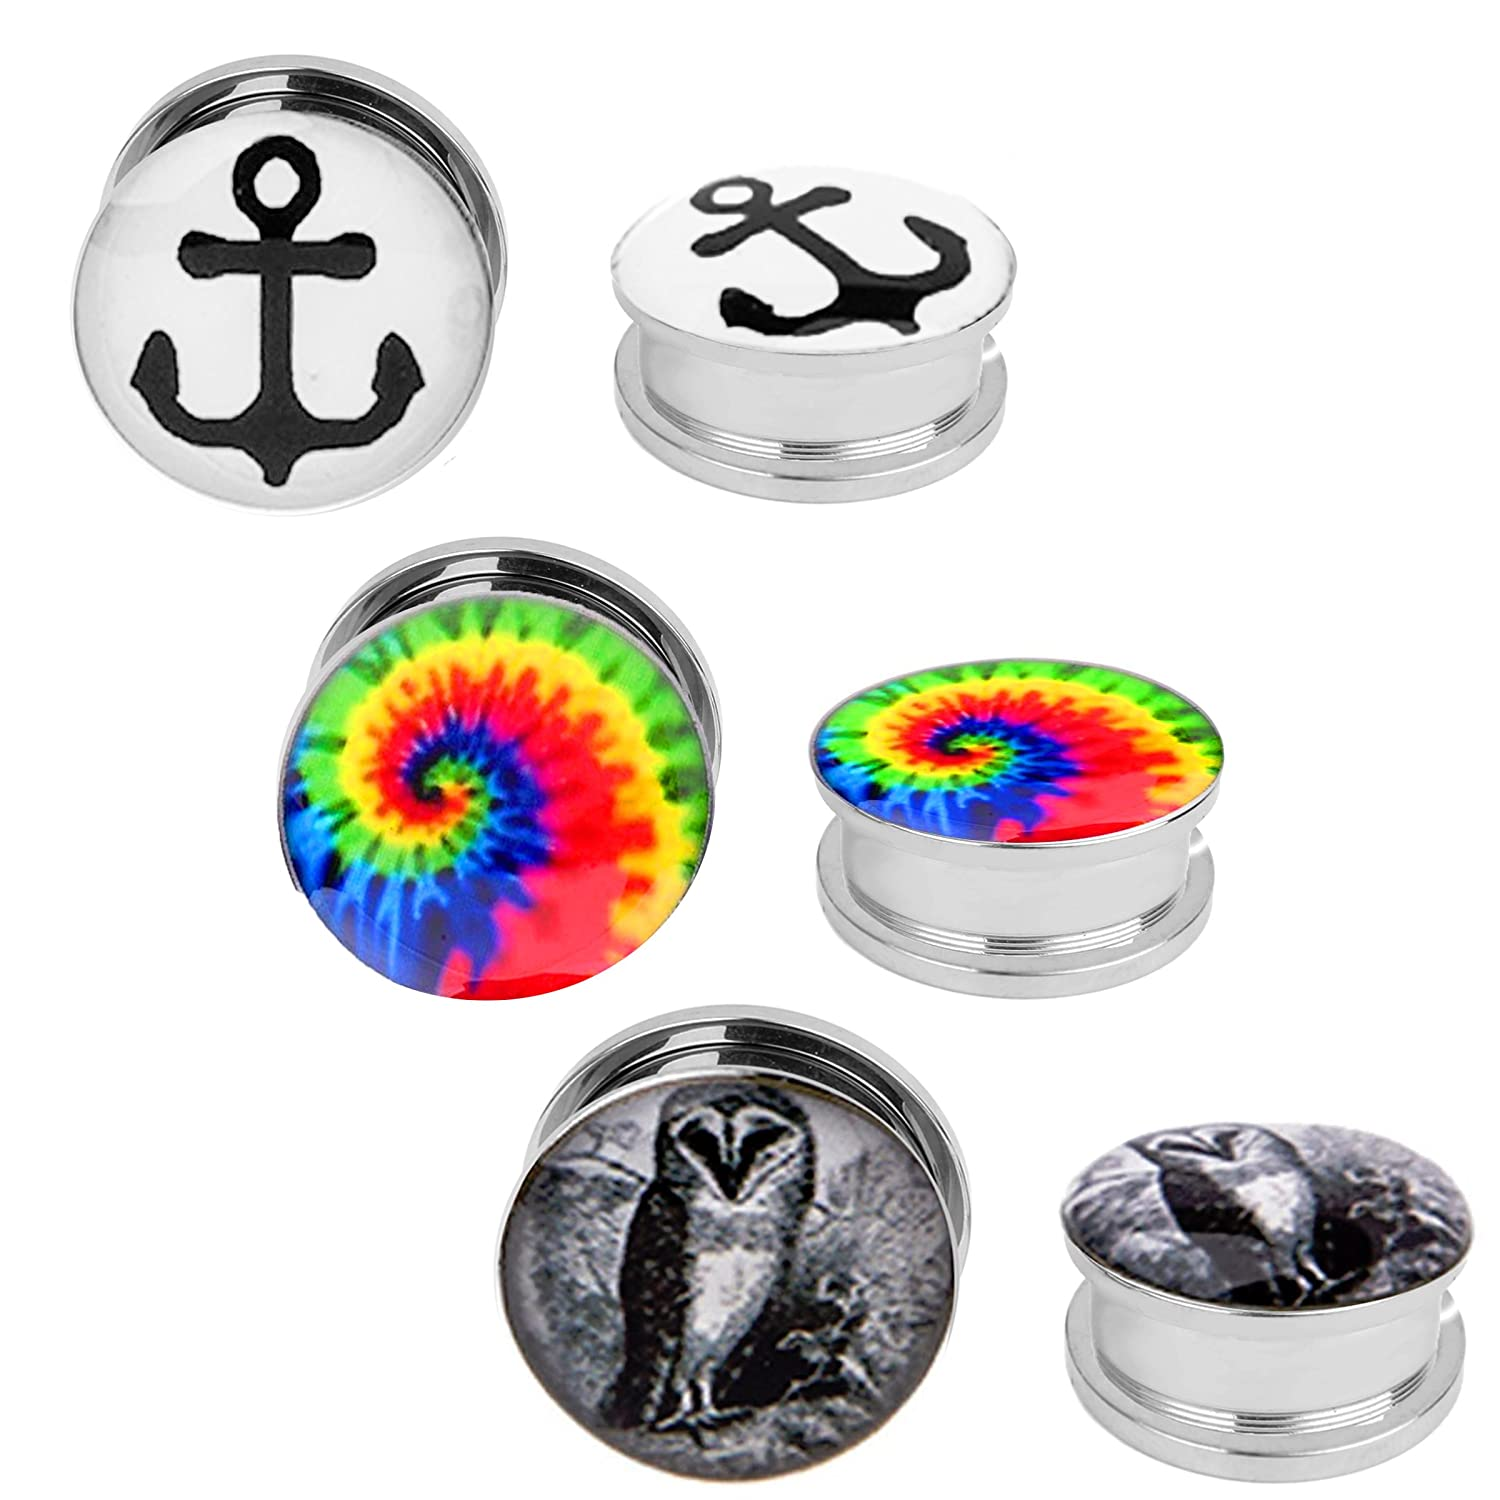 Screw Fit Anchor Owl Tie Dye Plugs Kit Stainless Steel Plugs 2G-00G - 6 Pack BodyJ4You PL6266-2G